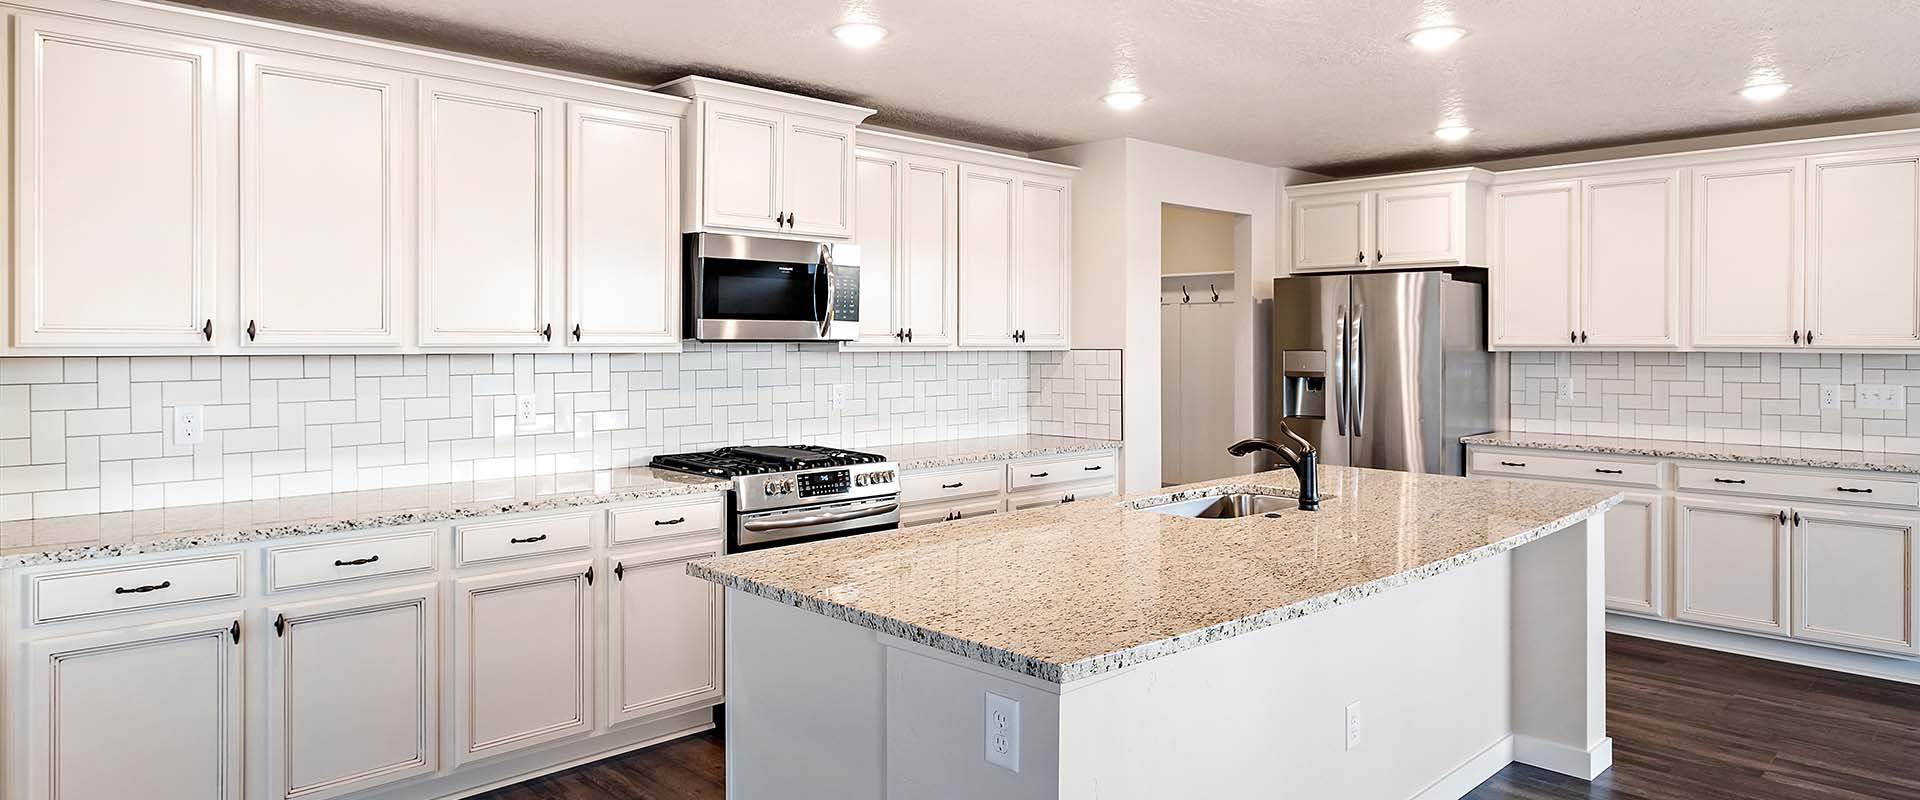 Yosemite_Kitchen_Hubble_Homes_New_Homes_Boise.jpg